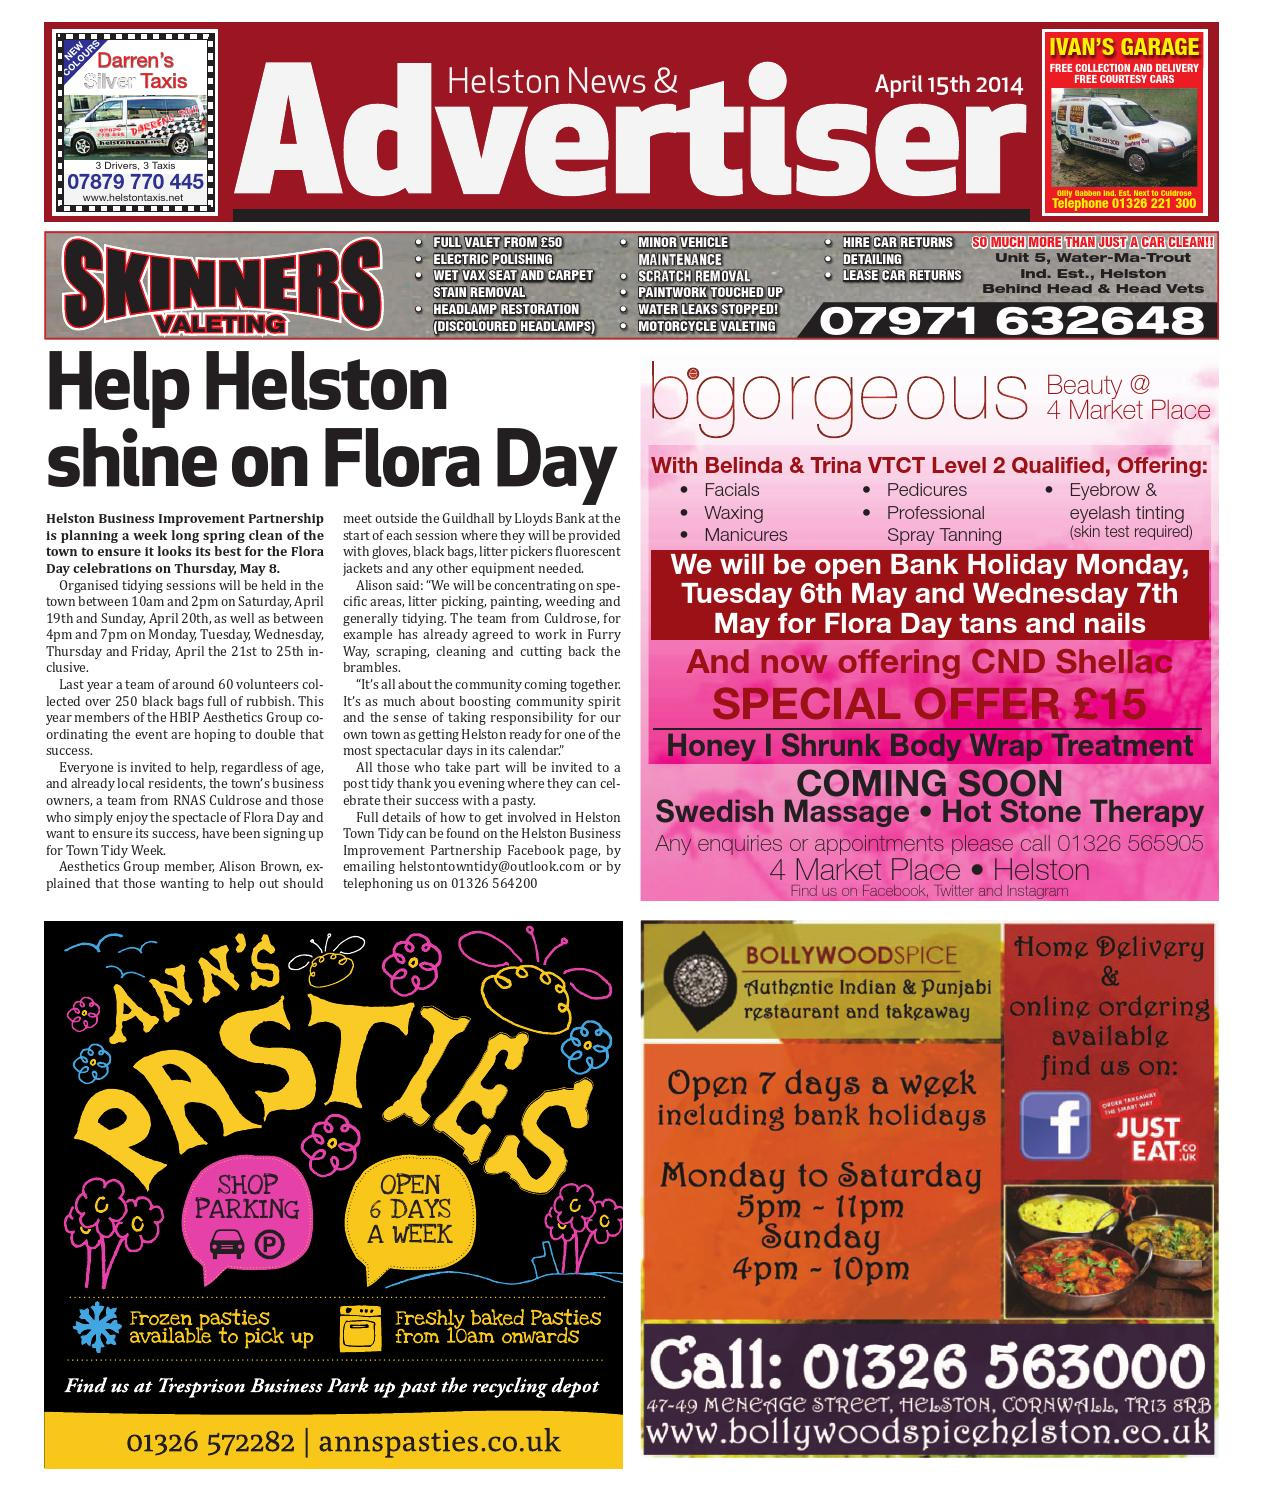 f4e9c608d0 Helston News   Advertiser - 15th April 2014 by Helston Advertiser ...